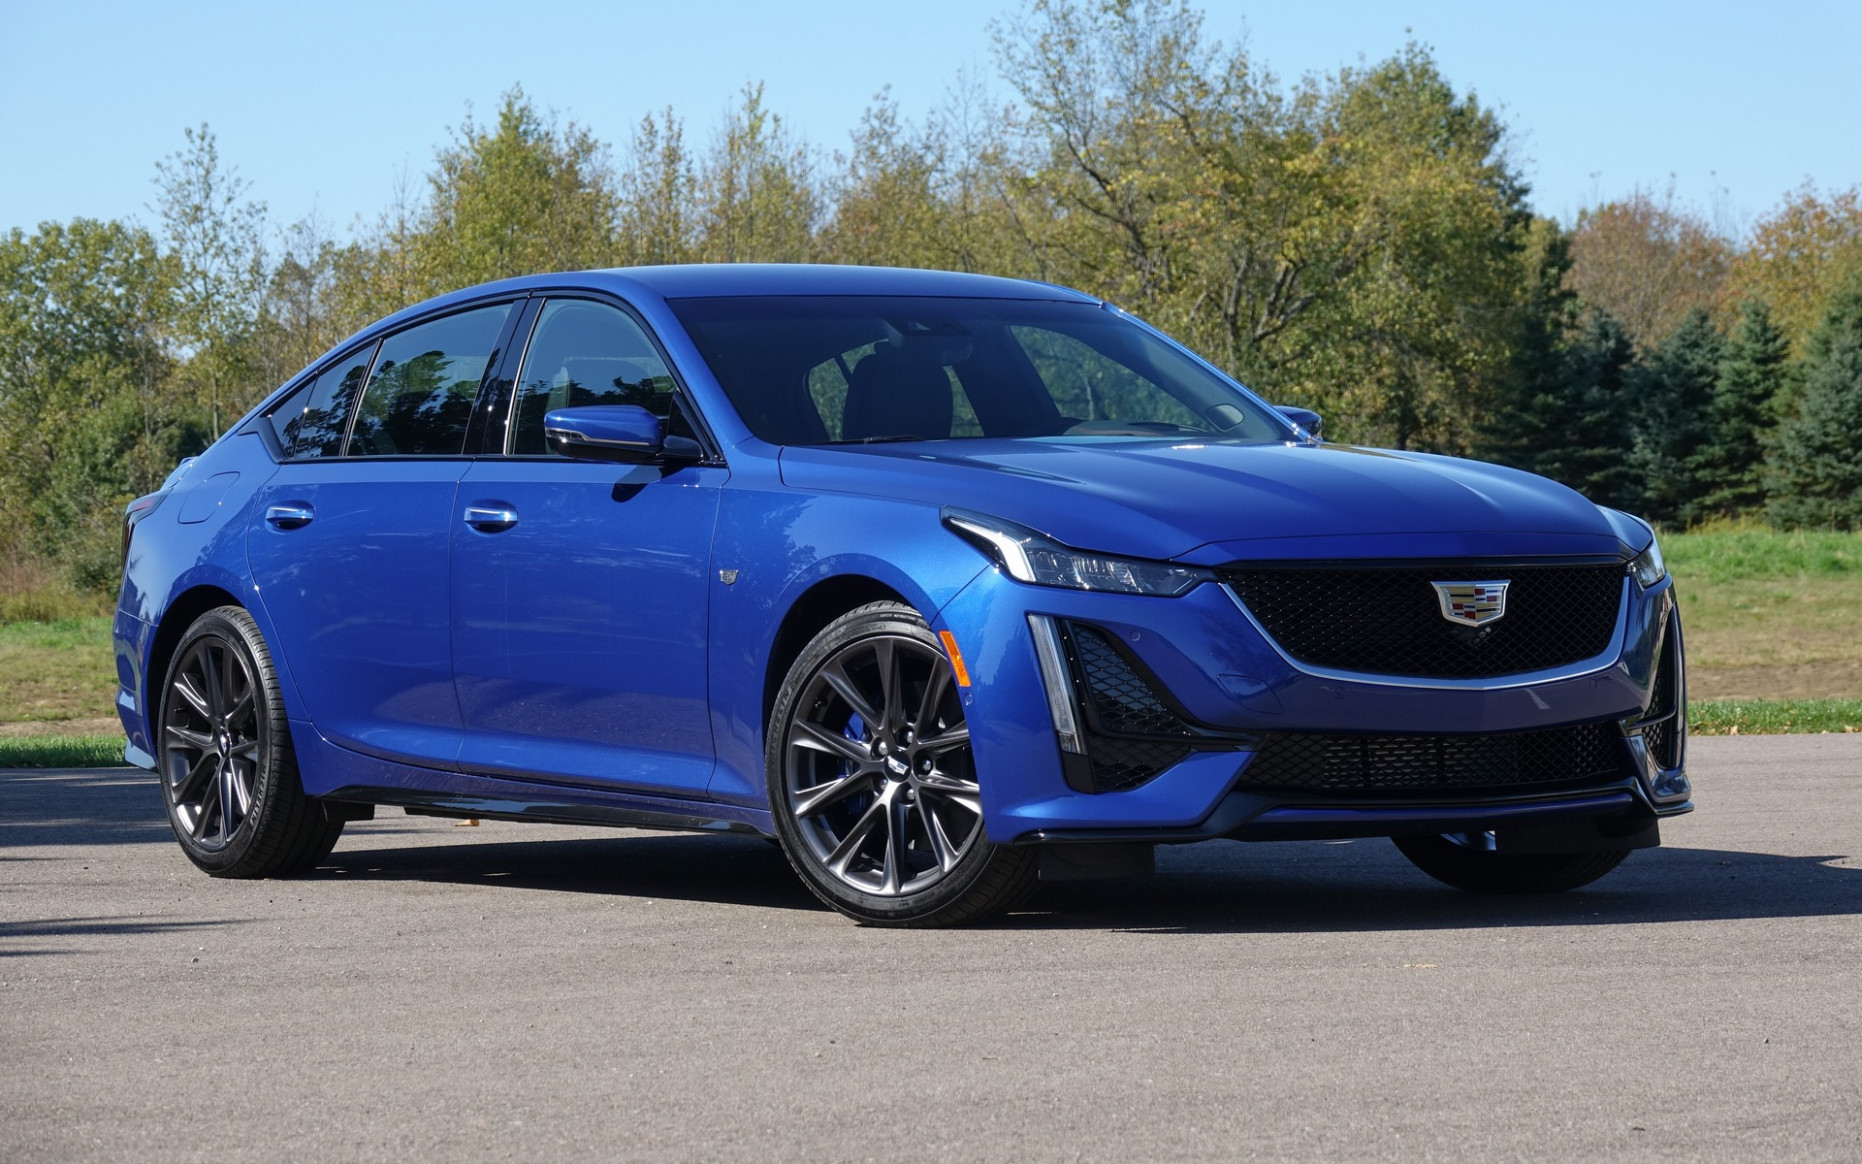 7 Cadillac CT7: In Need of More Horsepower - The Car Guide